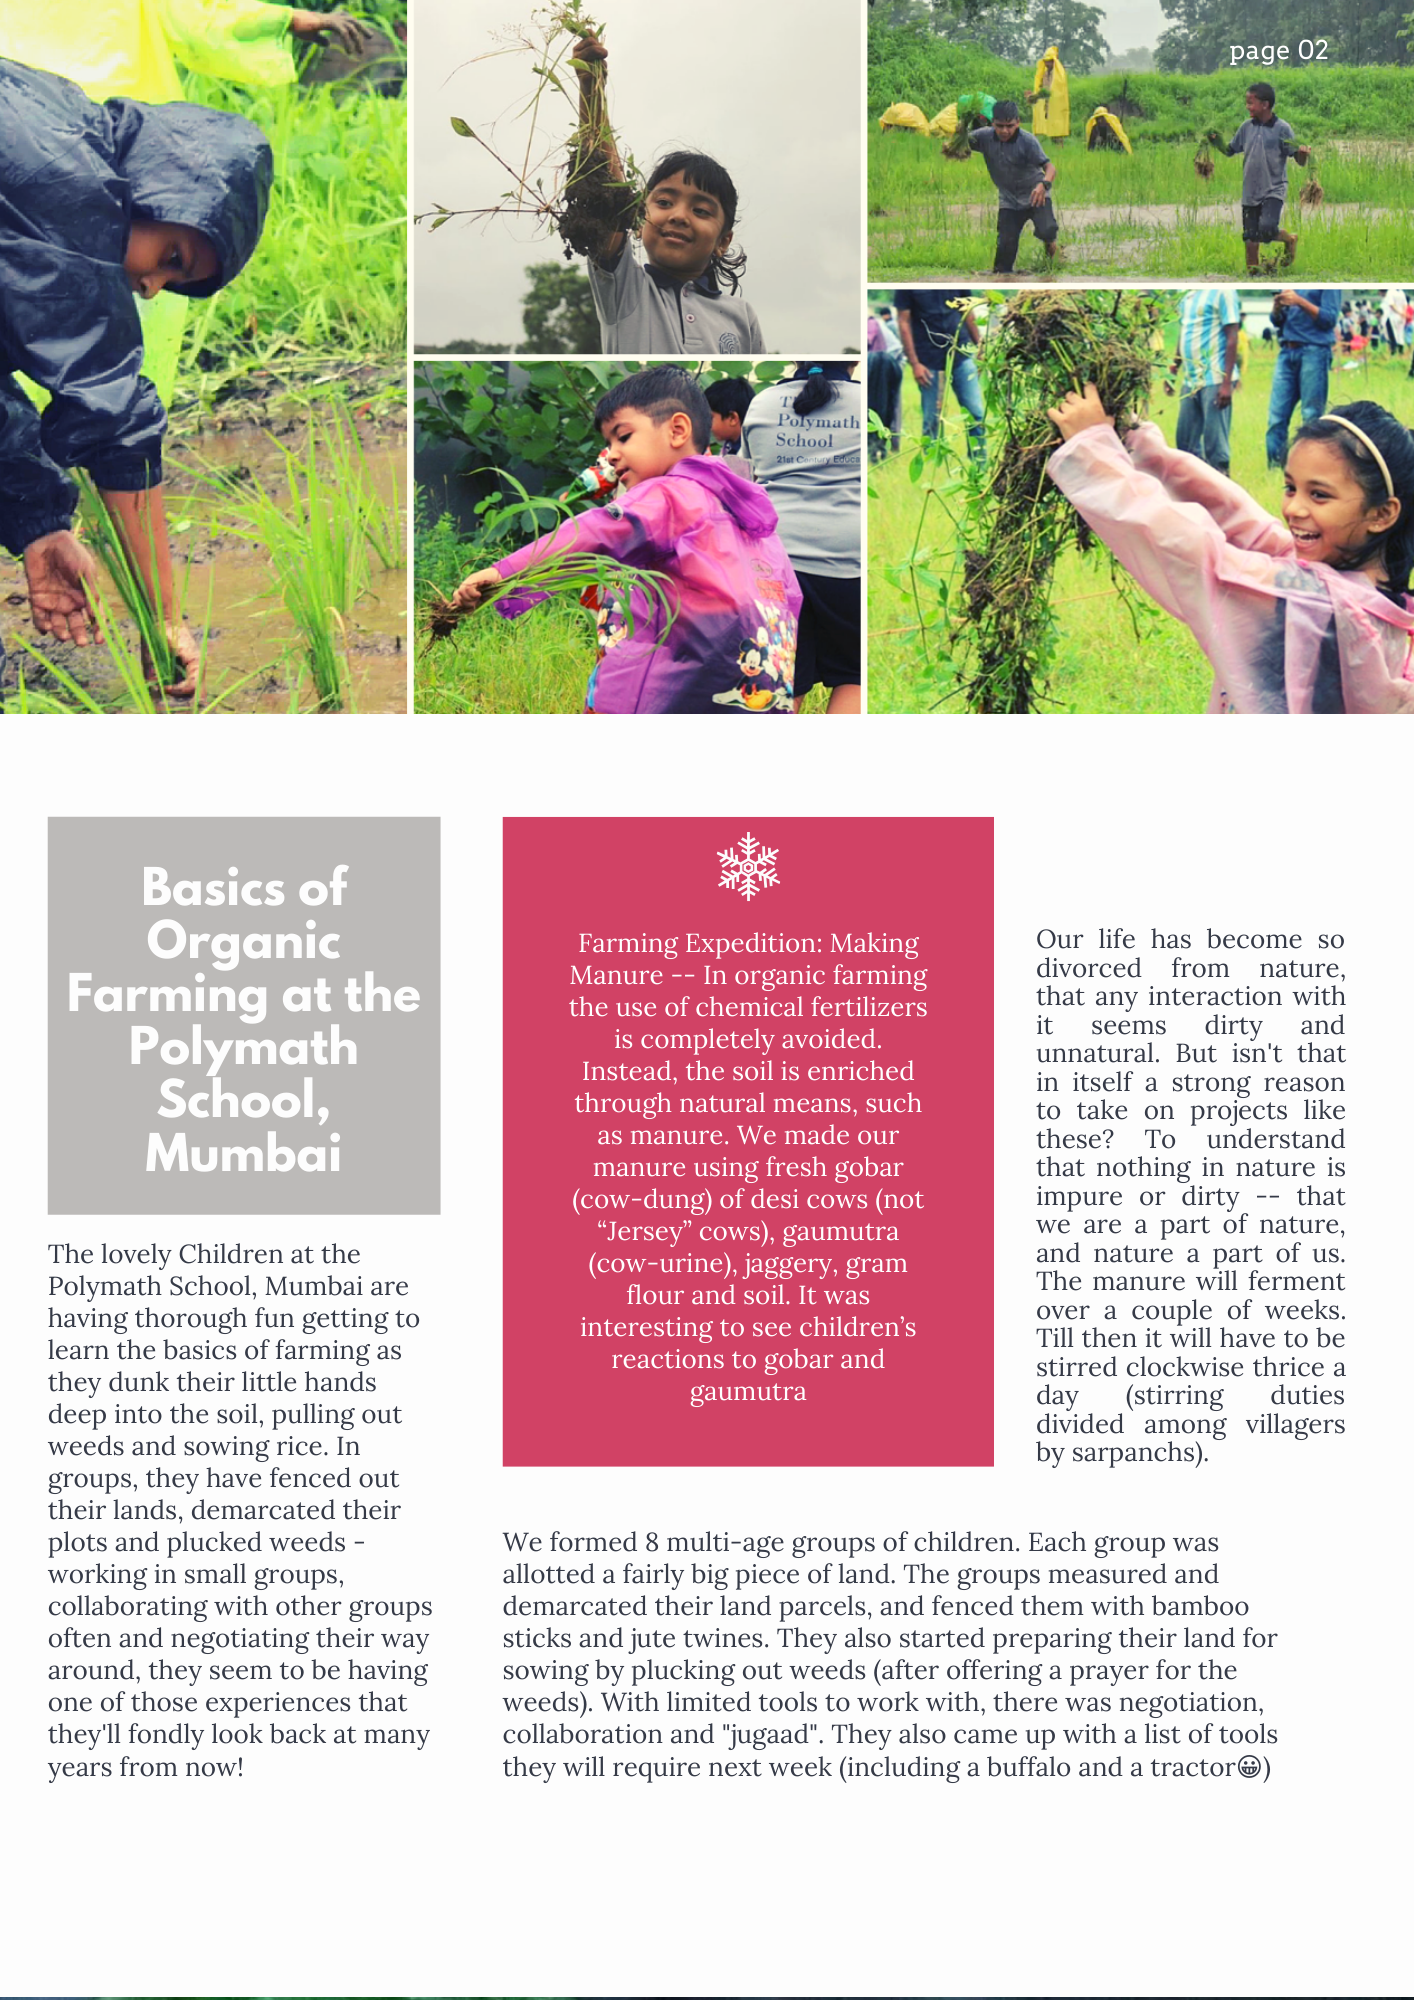 farmer diaries, farmer's magazine, chef thomas zaccharias, chef tzac, bombay canteen, polymath school, two brothers organic farms, organic farming, farmers of india, maharashtra farming, India